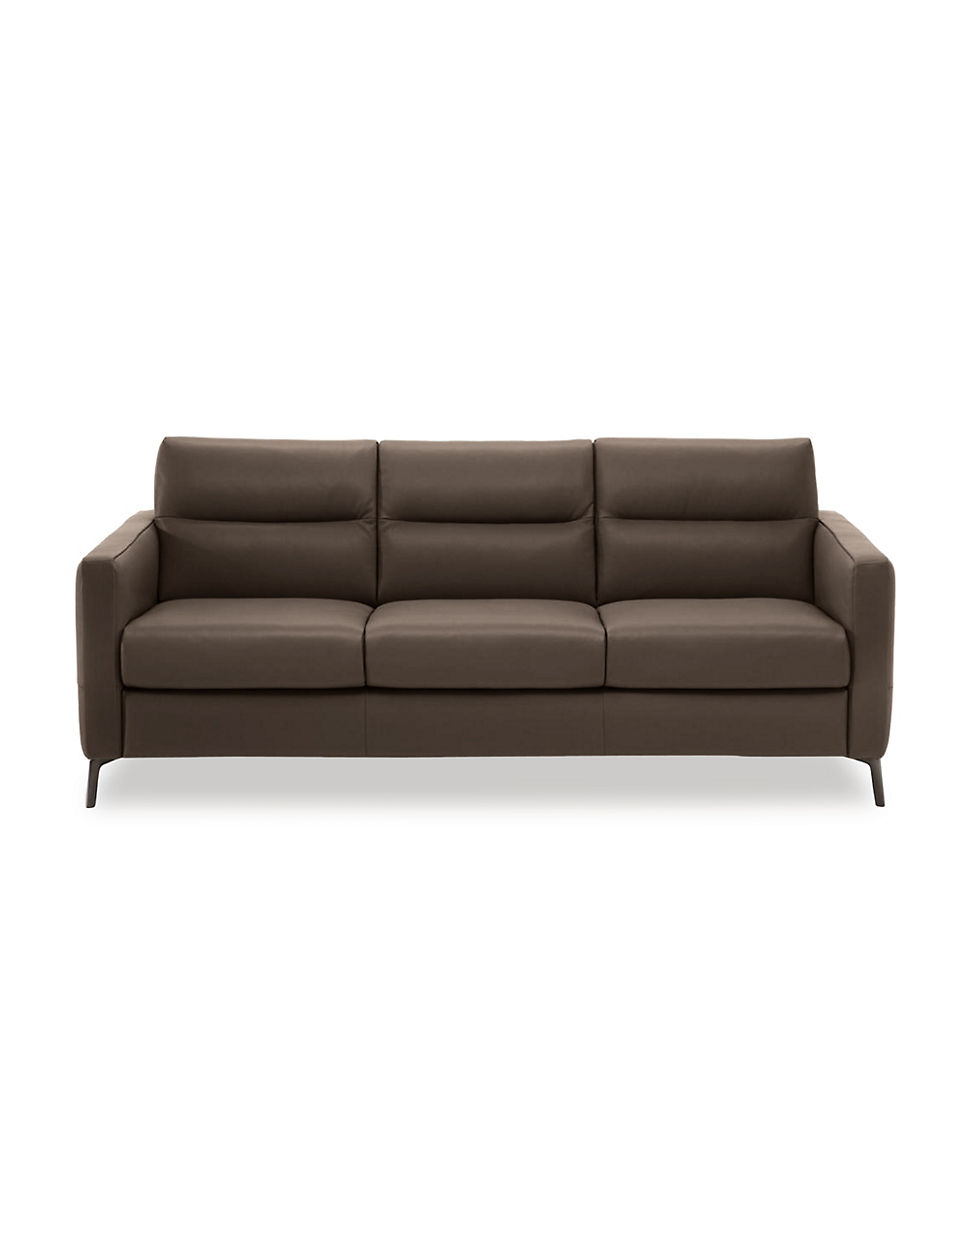 Natuzzi Editions Naples Leather Sofa With Track Arm Www